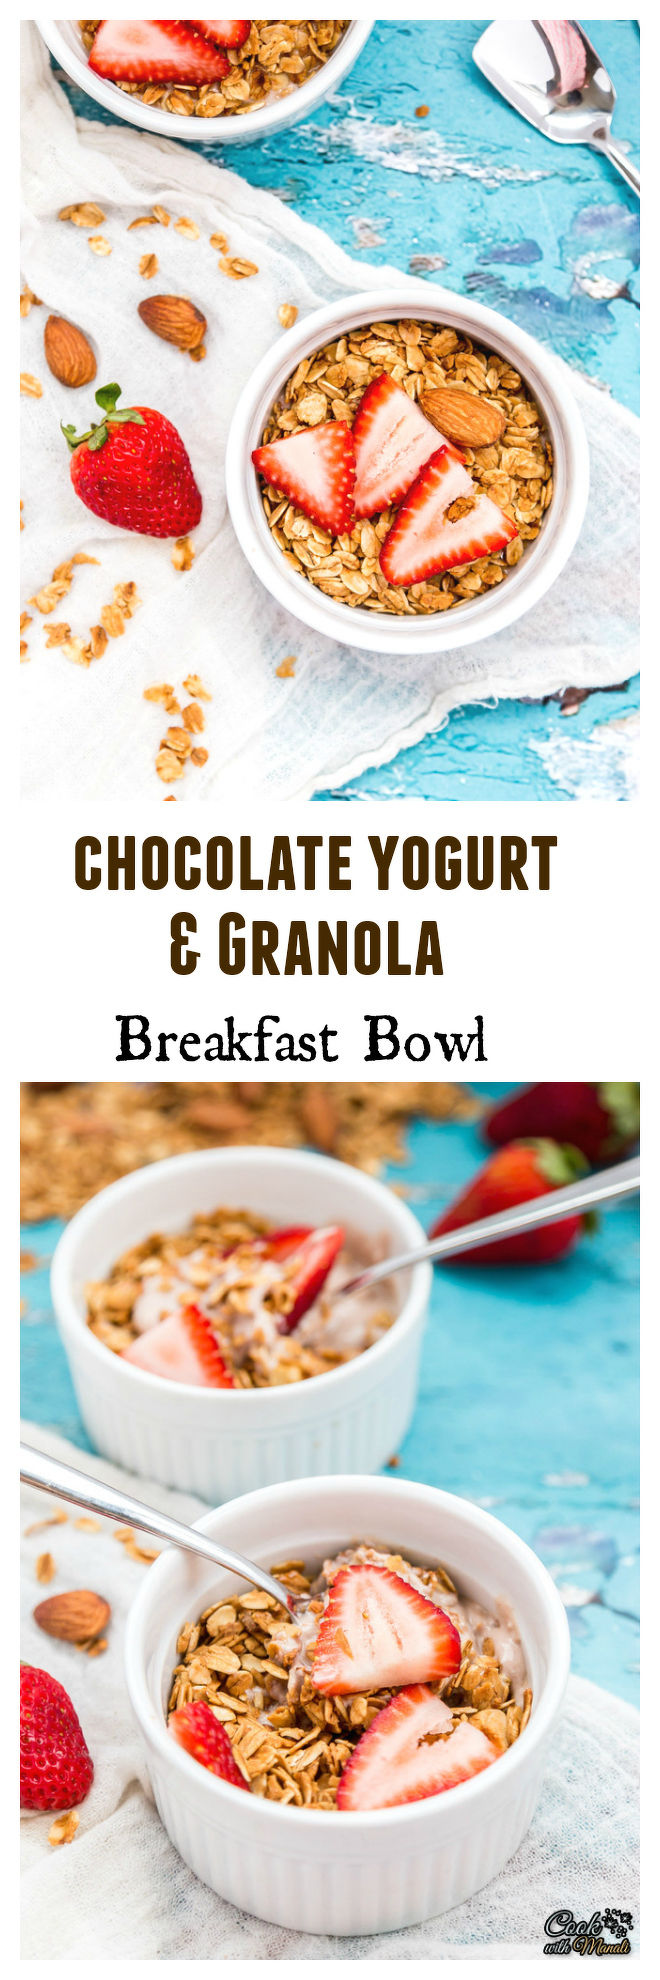 Chocolate Yogurt & Granola Breakfast Bowl Collage-nocwm